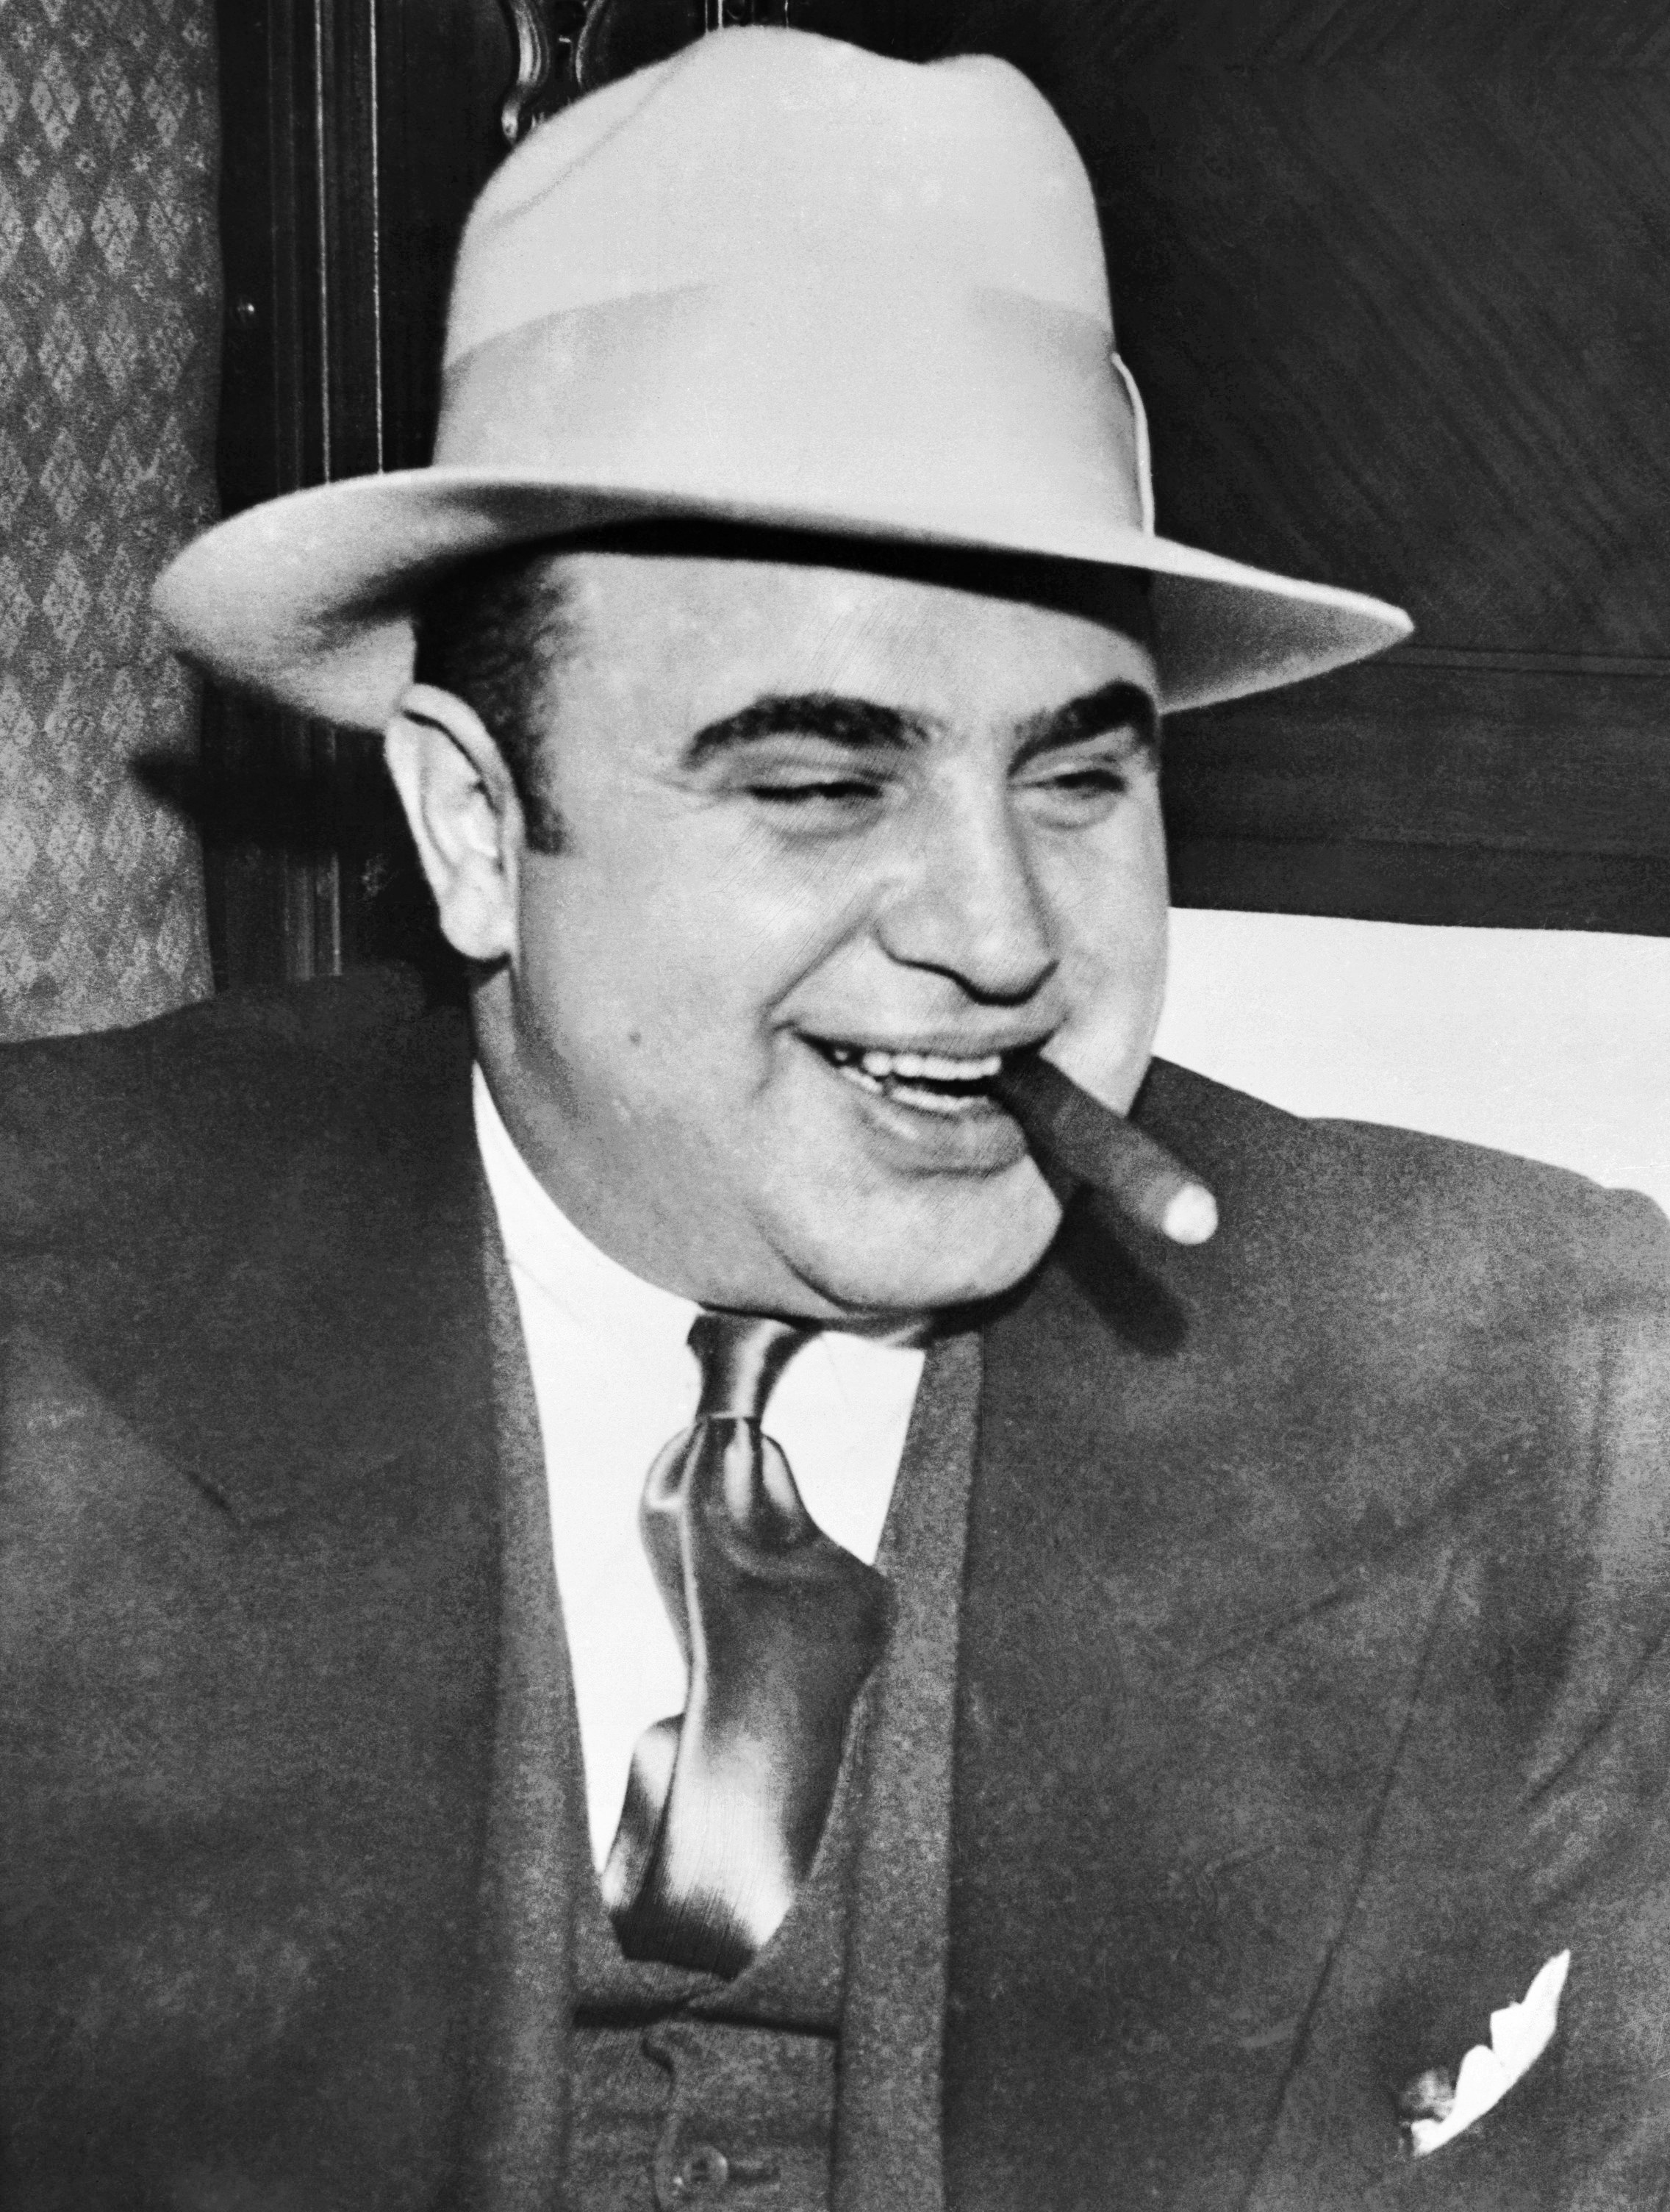 Al Capone | Known people - famous people news and biographies